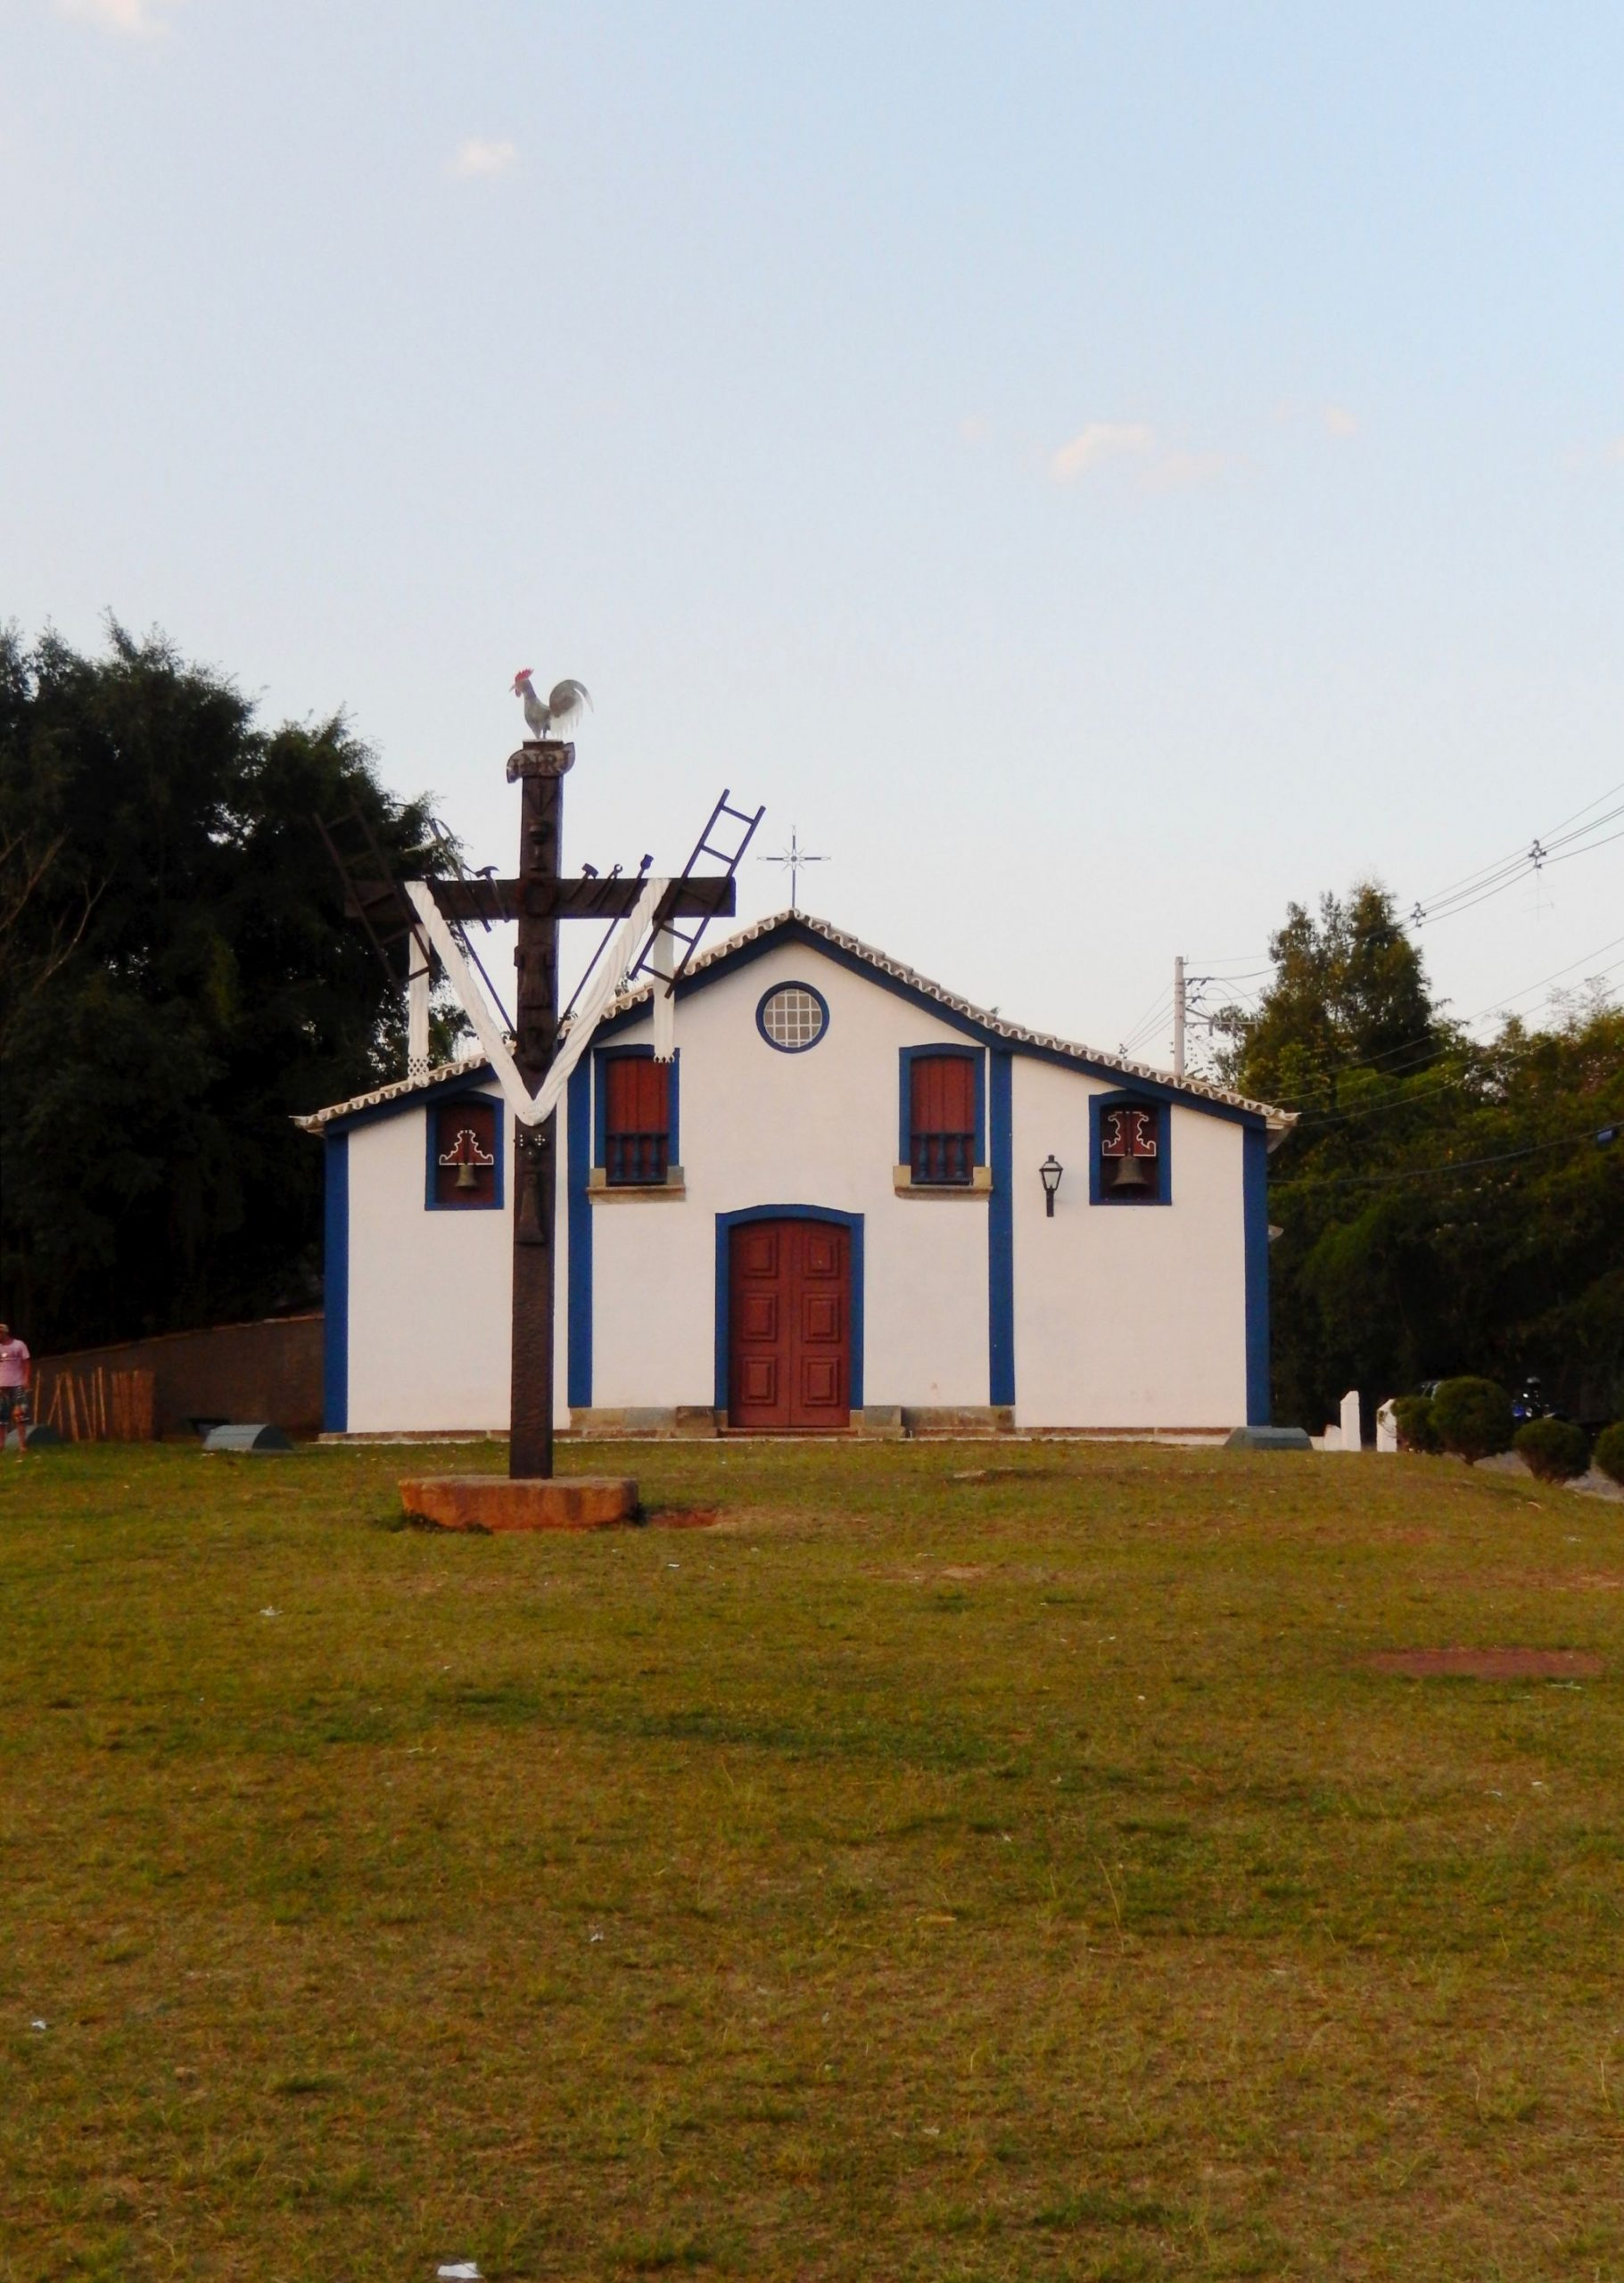 Oldest church of Tiradentes